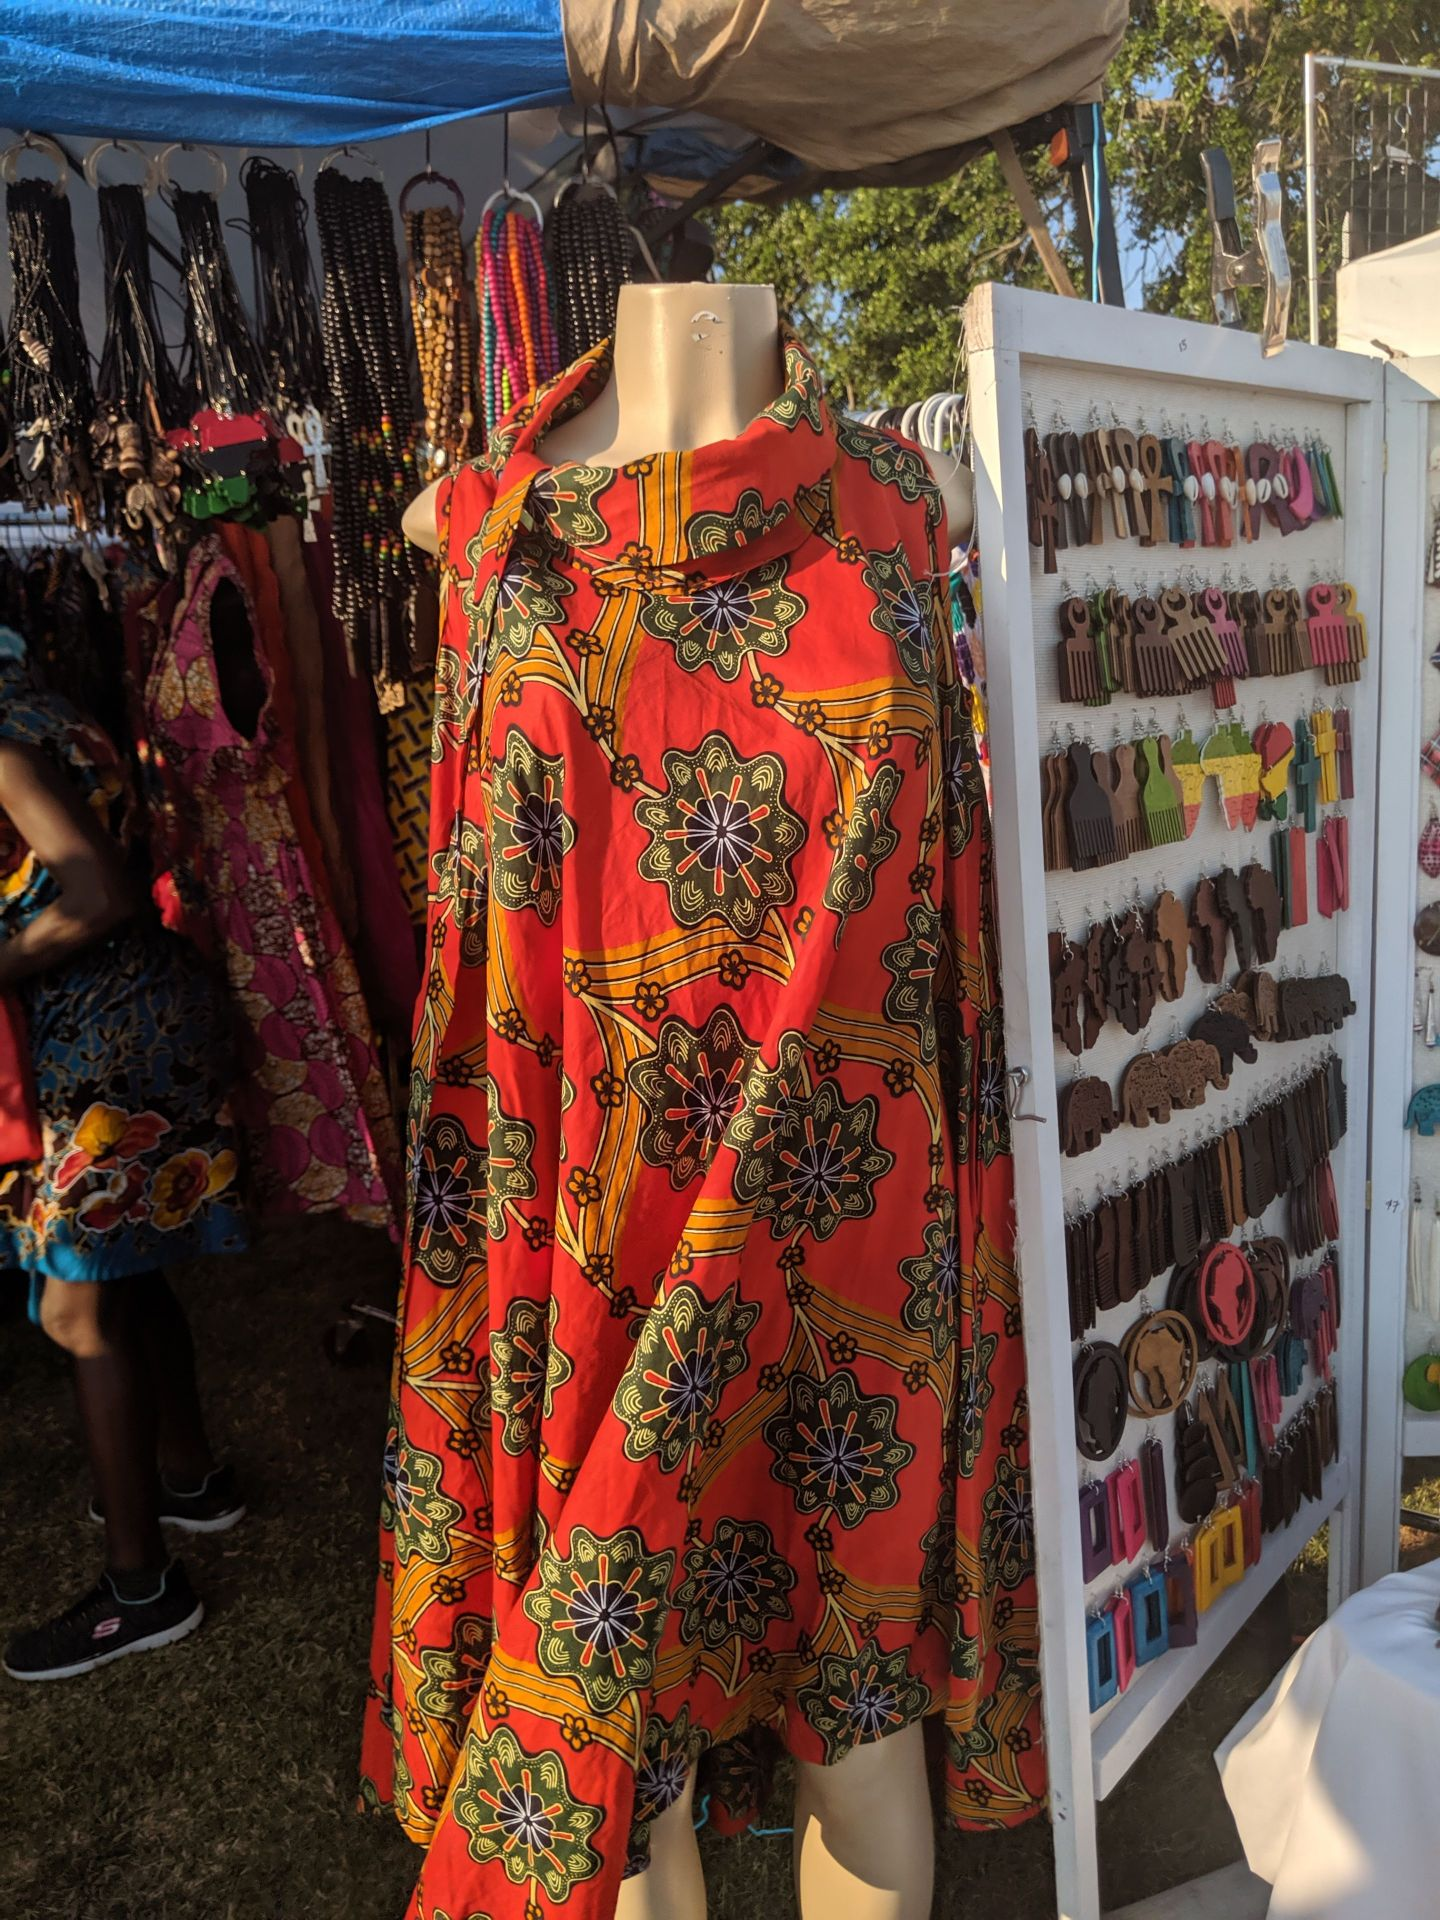 IMG_20190524_185622 Black Southern Belle Travels: Images of Gullah Festival 2019 in Beaufort, SC